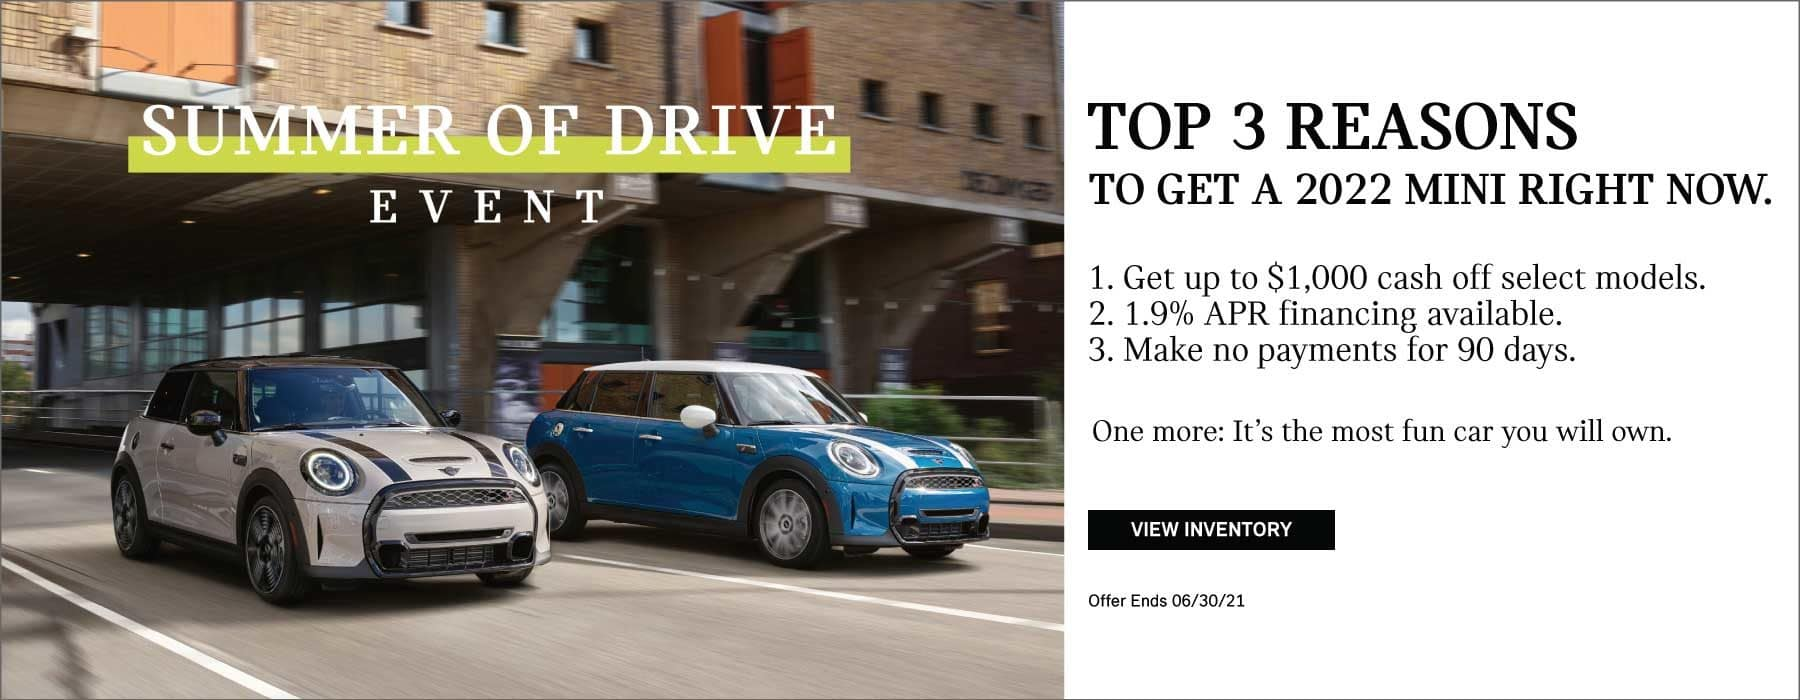 Top 3 Reasons to Get a 2022 MINI Right Now- 1. Get up to $1,000 cash off select models 2. 1.9% APR financing available 3. Make no payments for 90 days